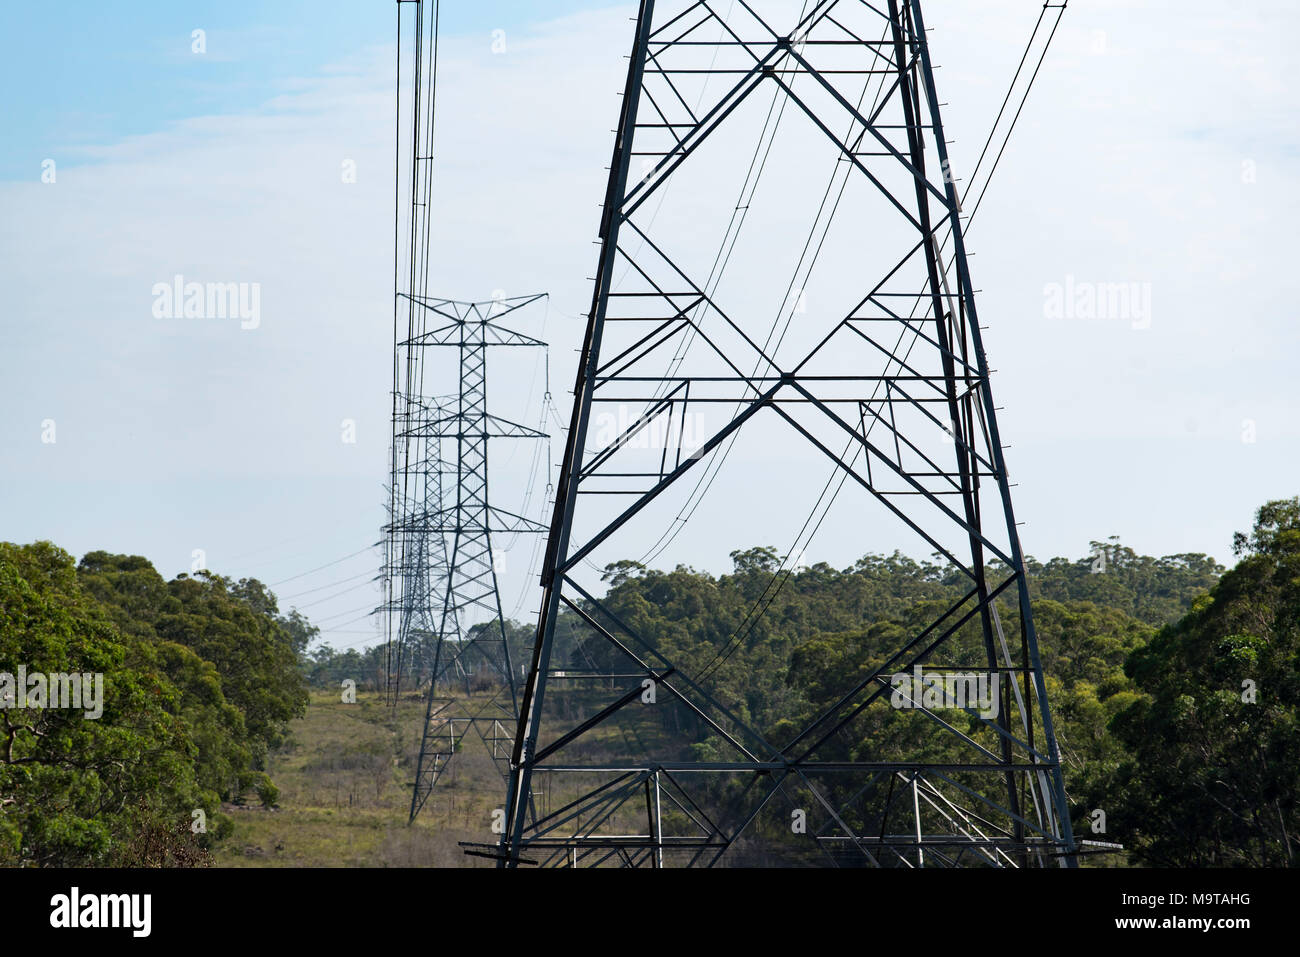 High tension and high voltage power poles and lines in NSW, Australia - Stock Image